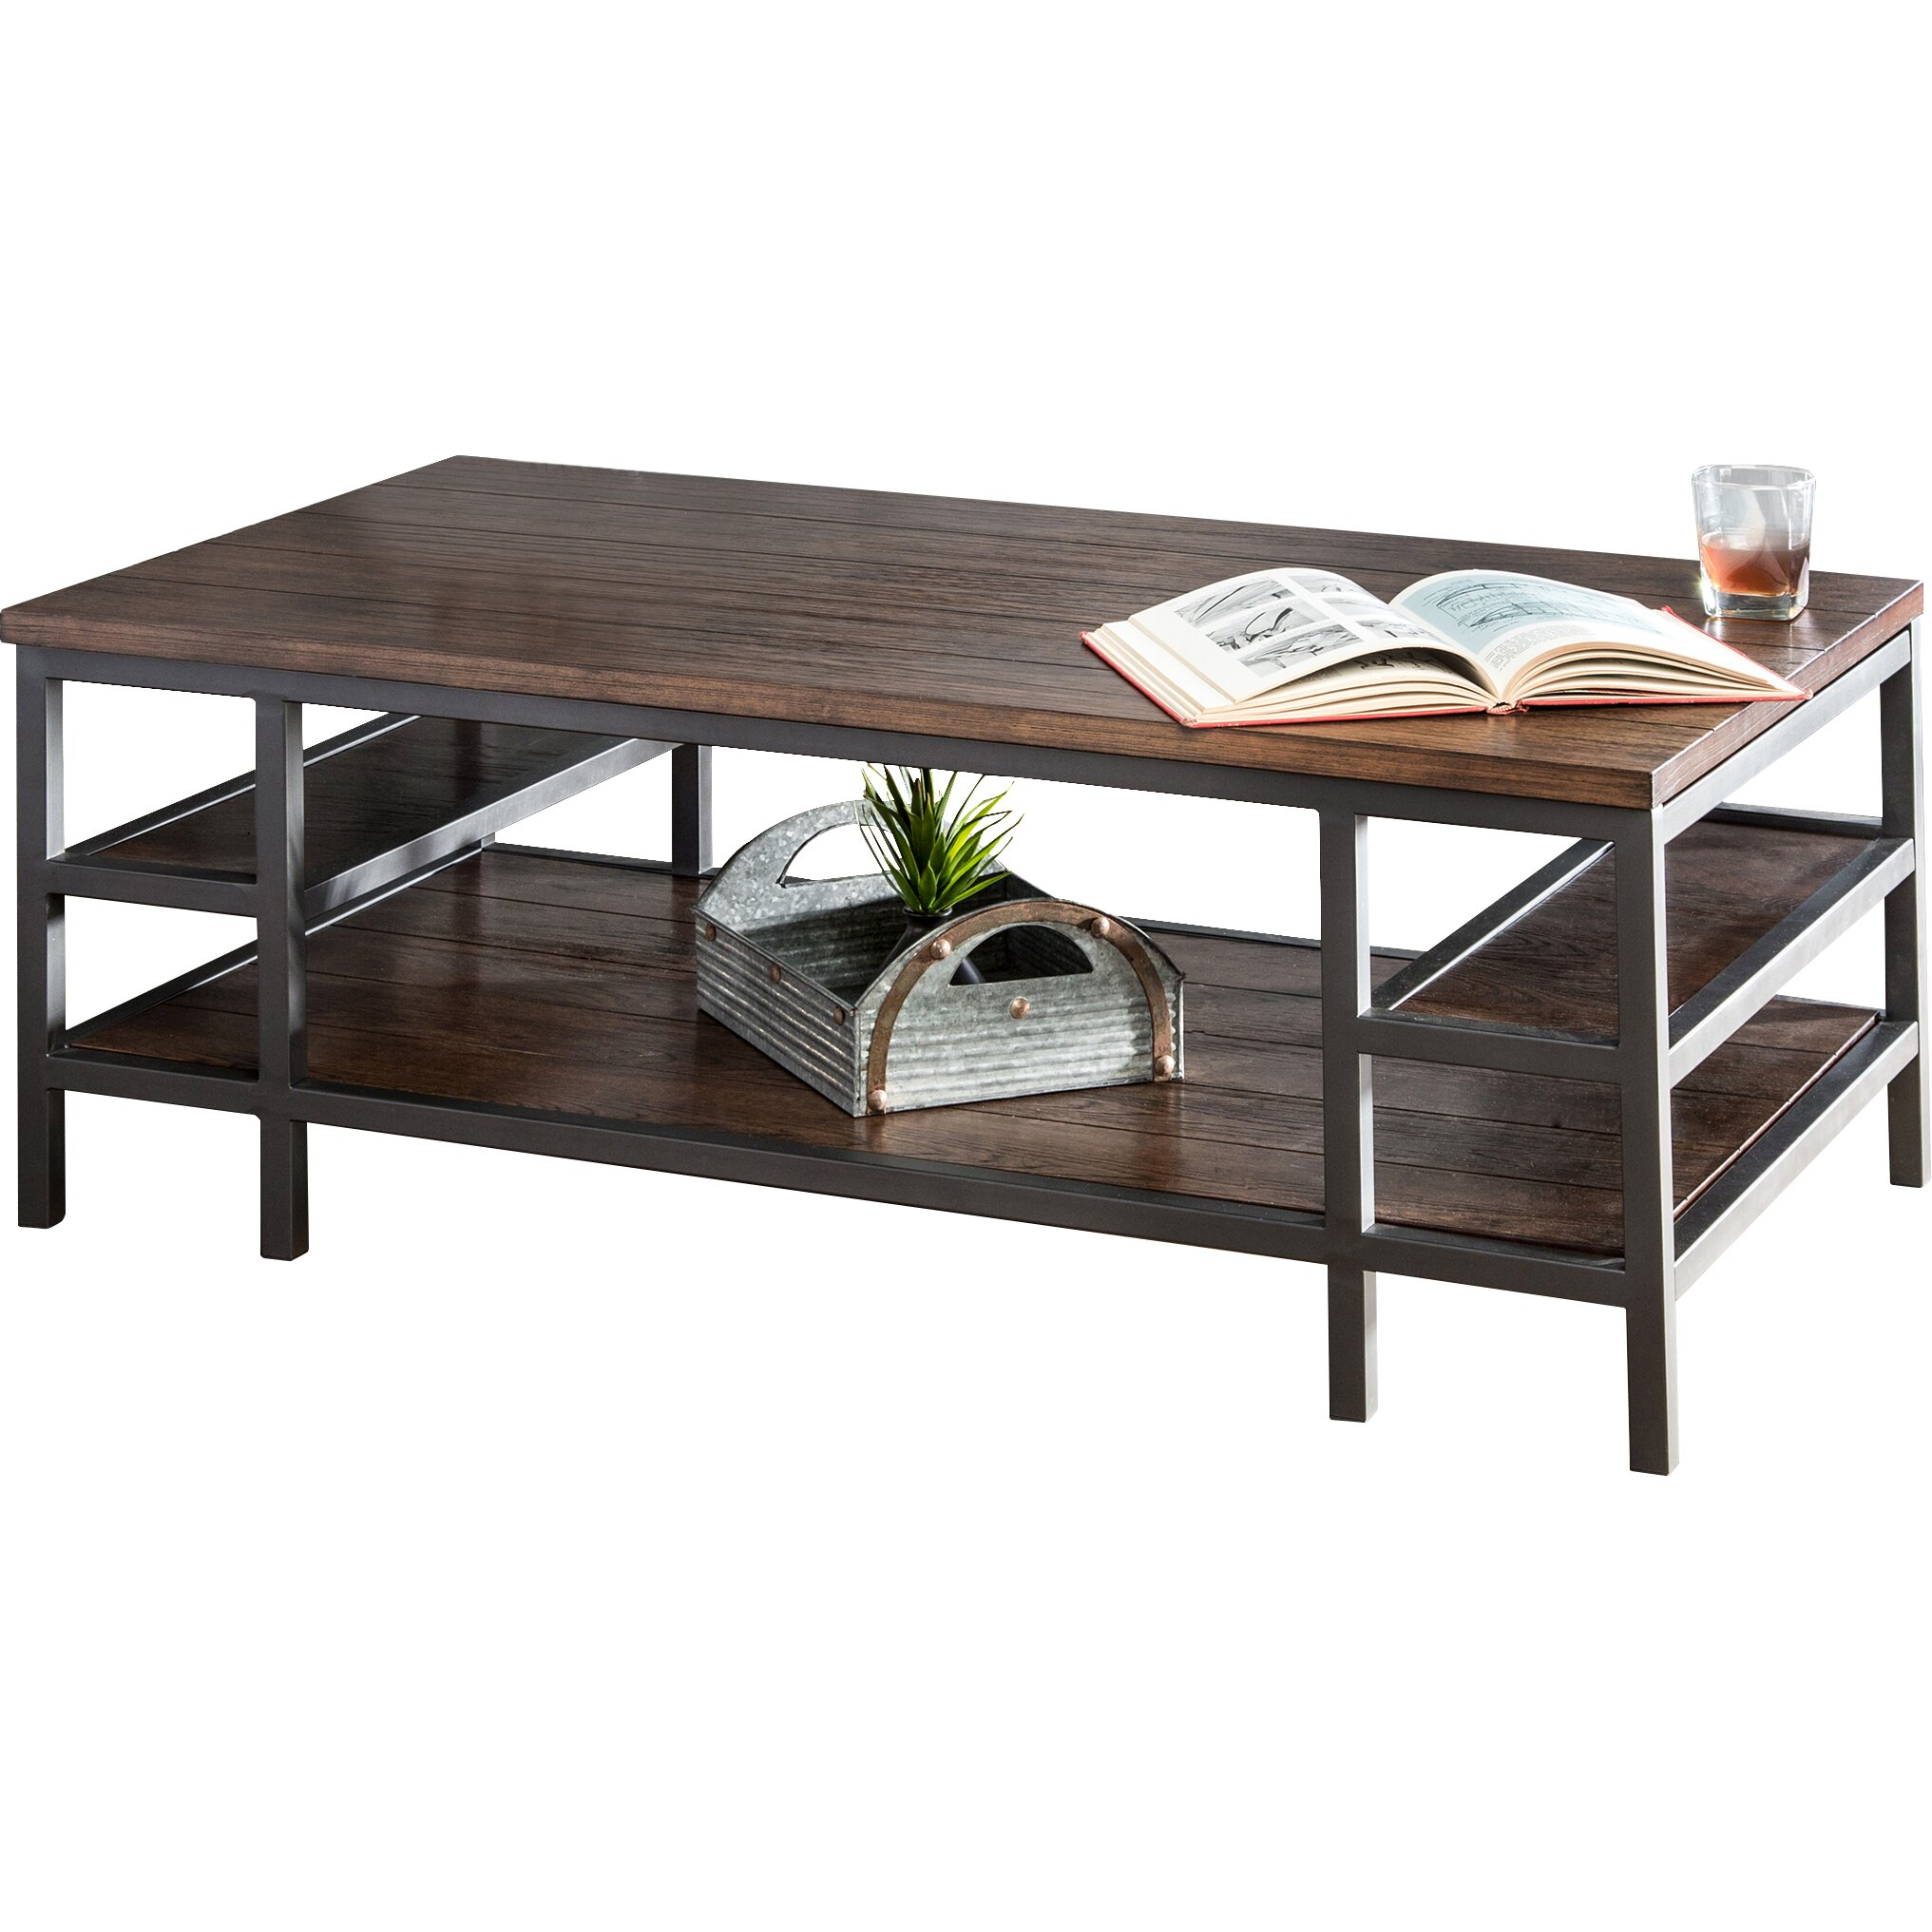 hokku designs kizan coffee table reviews wayfair. Black Bedroom Furniture Sets. Home Design Ideas